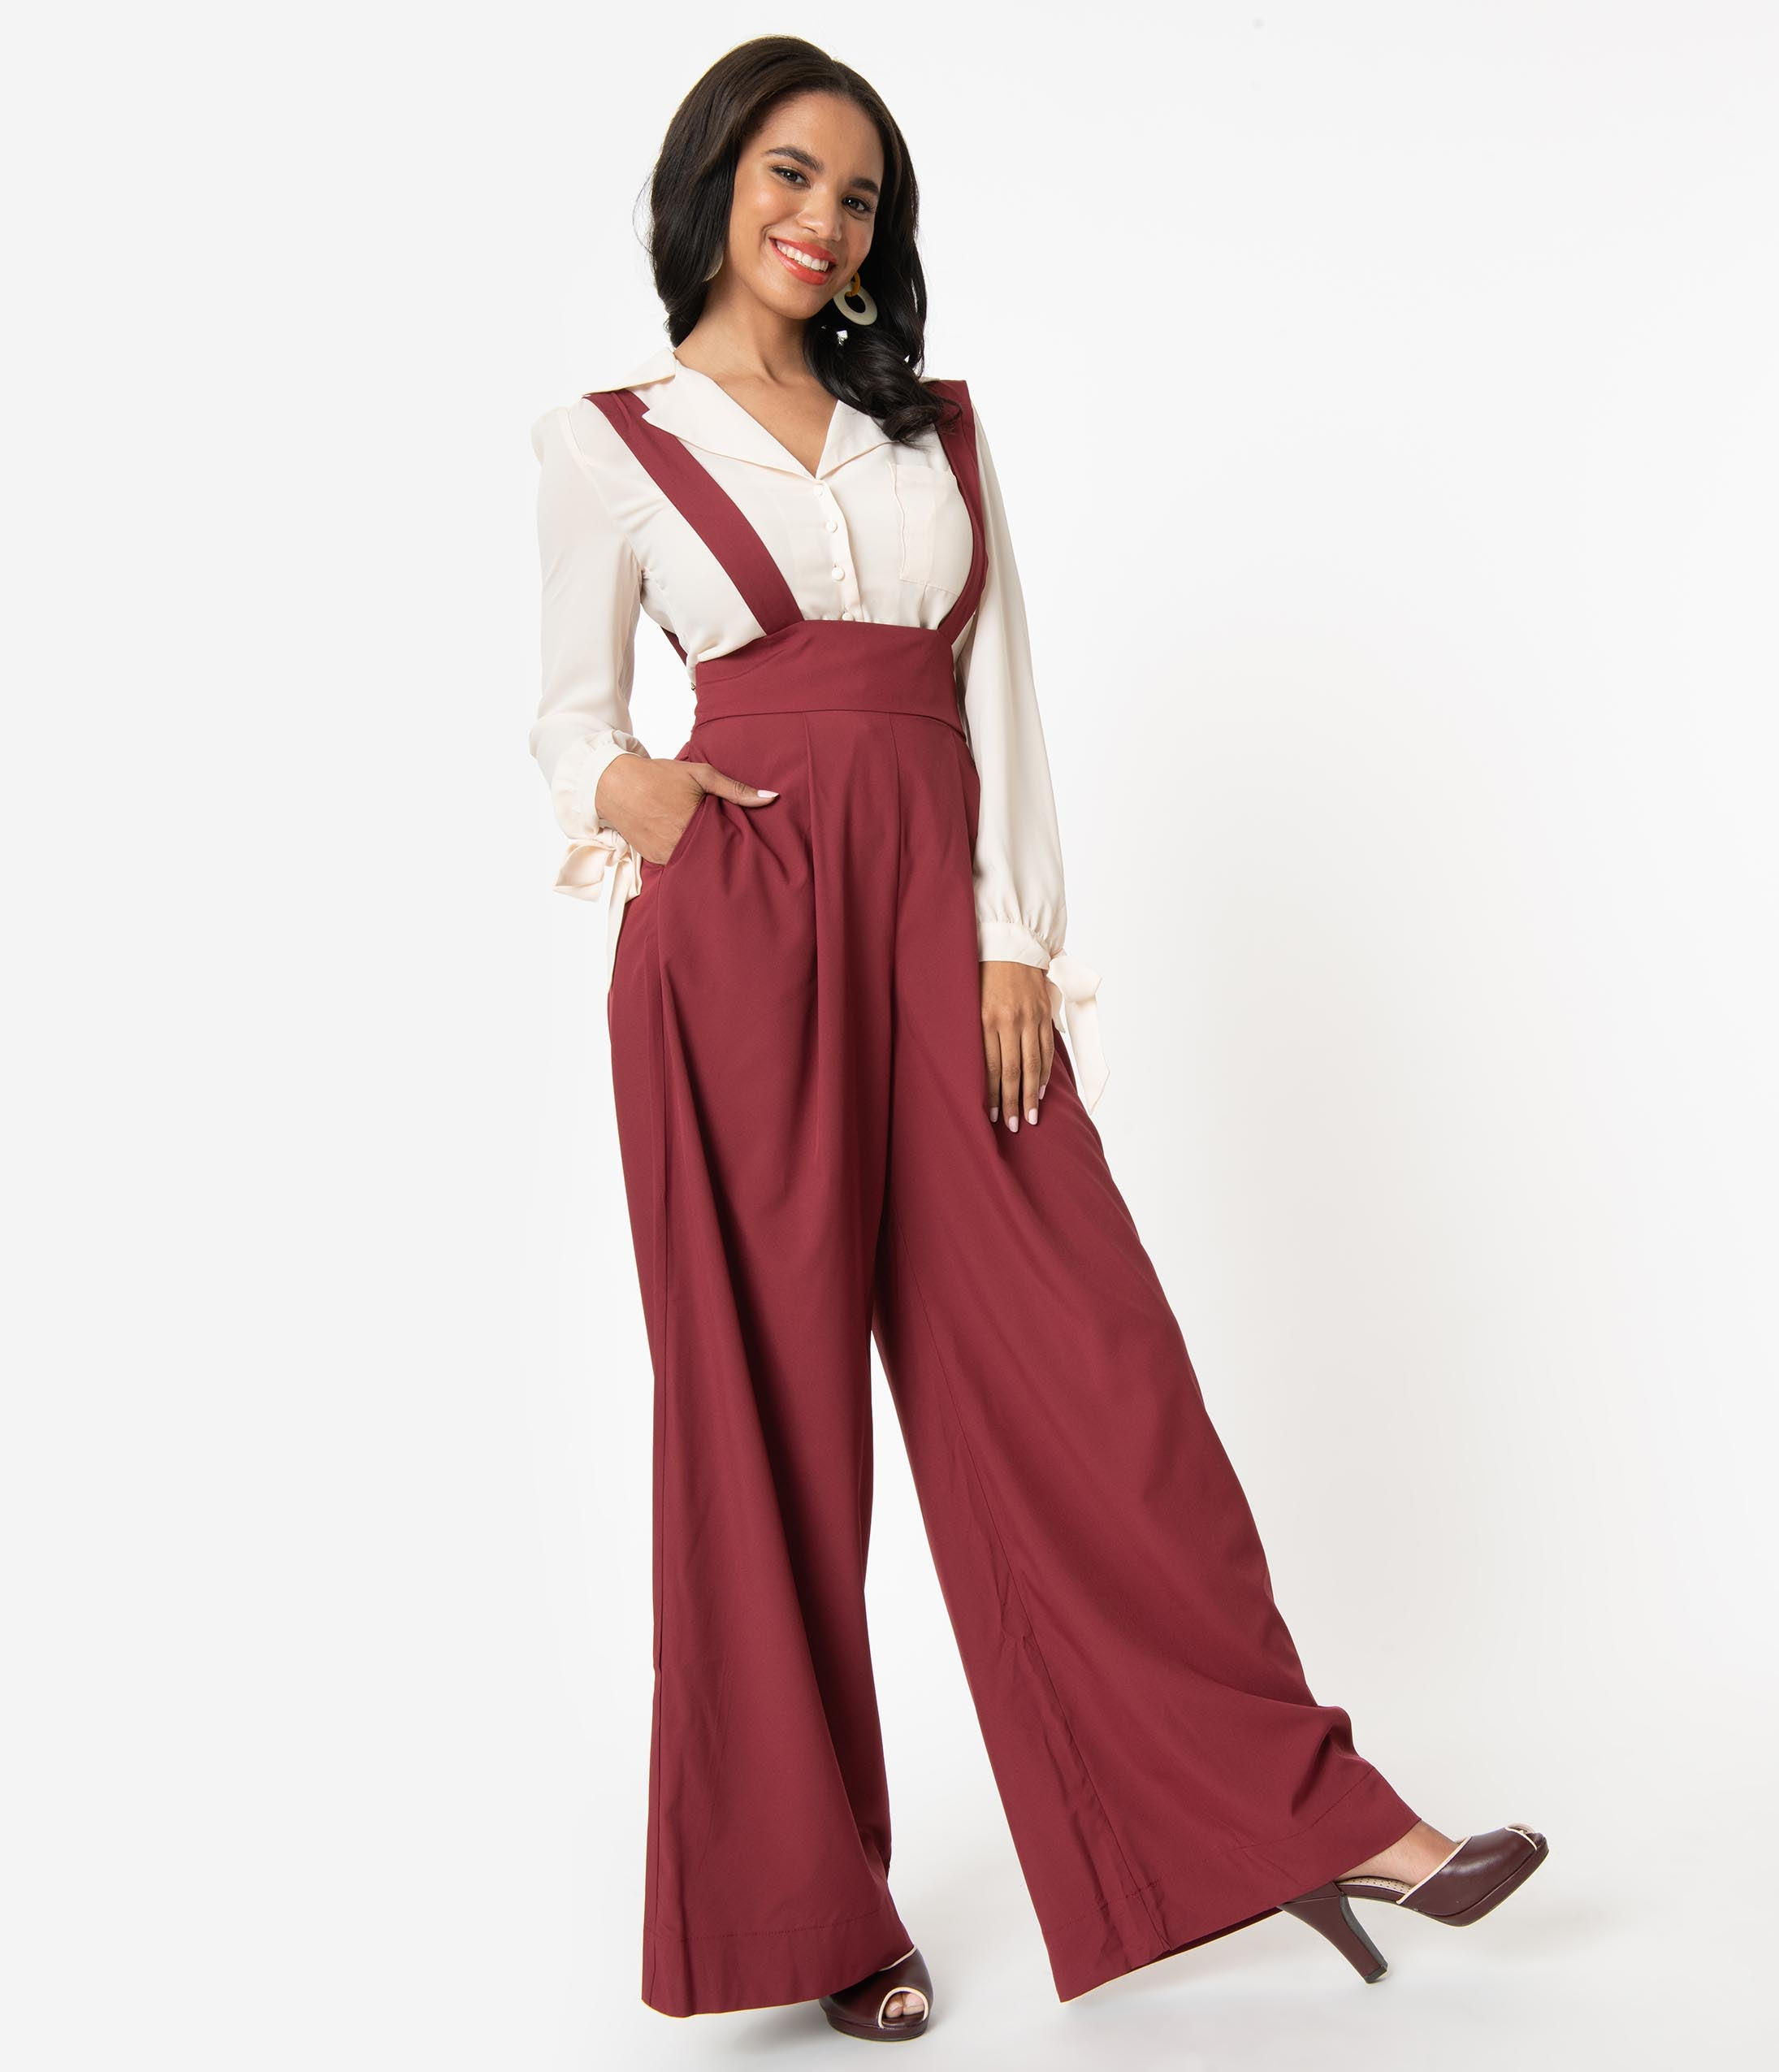 1940s Swing Pants & Sailor Trousers- Wide Leg, High Waist Unique Vintage Merlot Red High Waist Rochelle Suspender Pants $64.00 AT vintagedancer.com